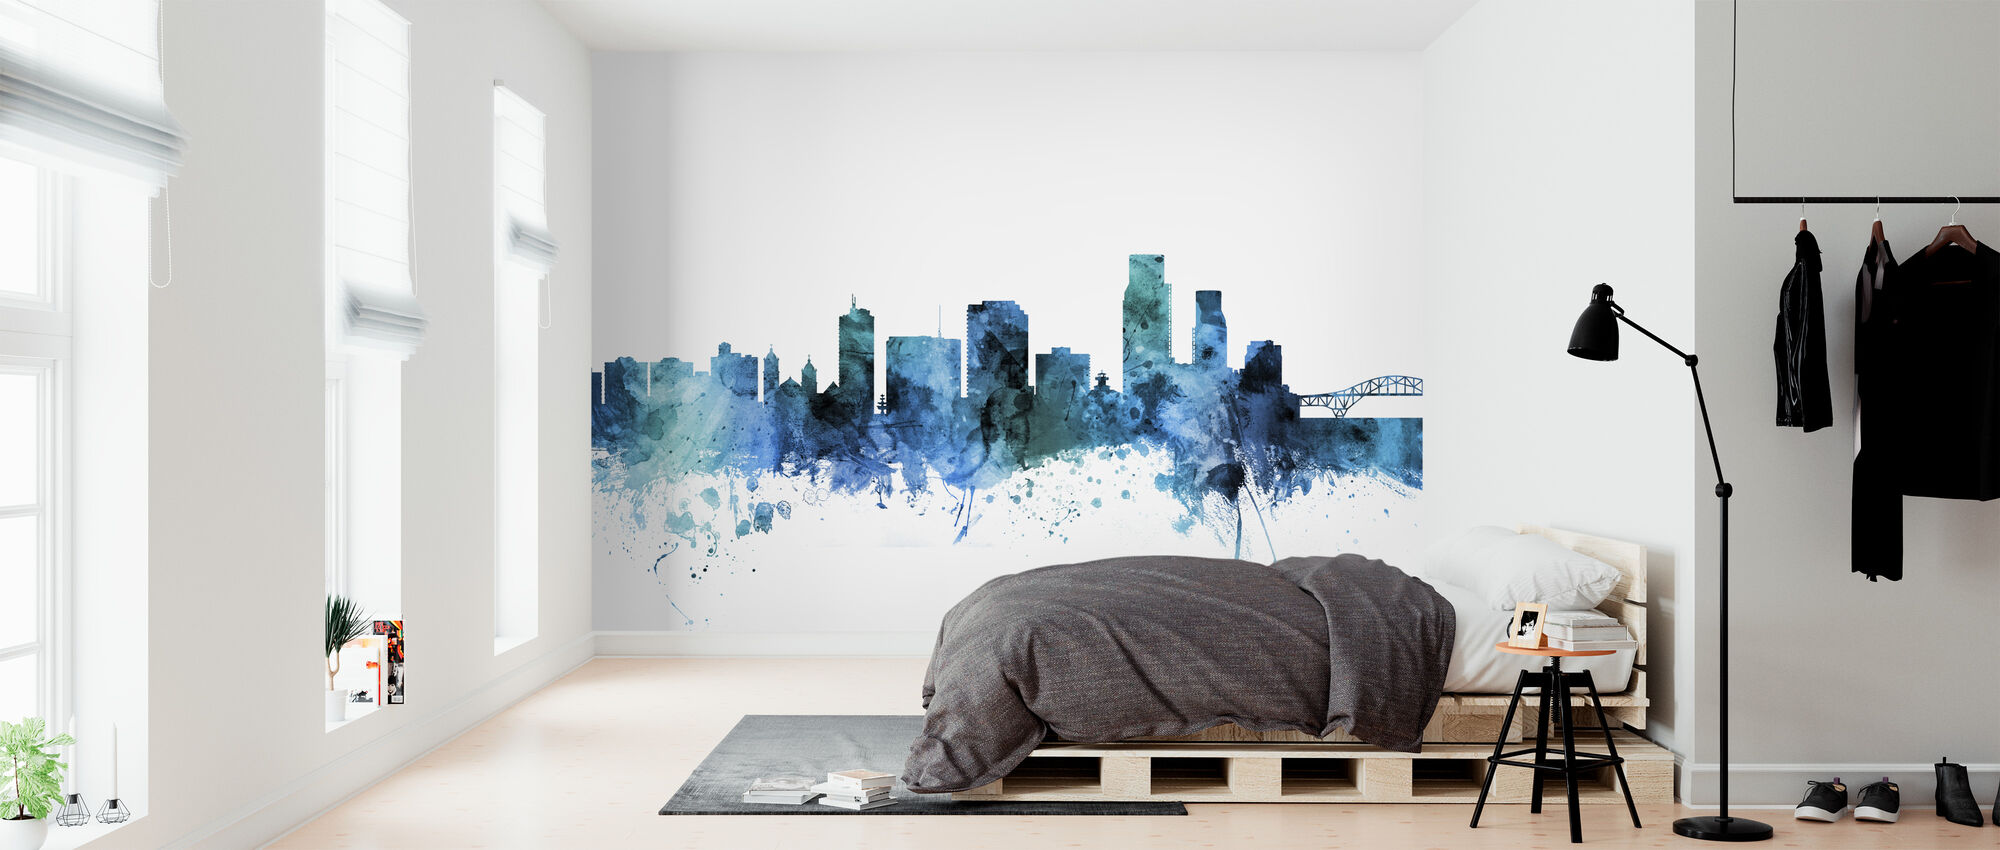 Corpus Christie Texas Skyline - Wallpaper - Bedroom